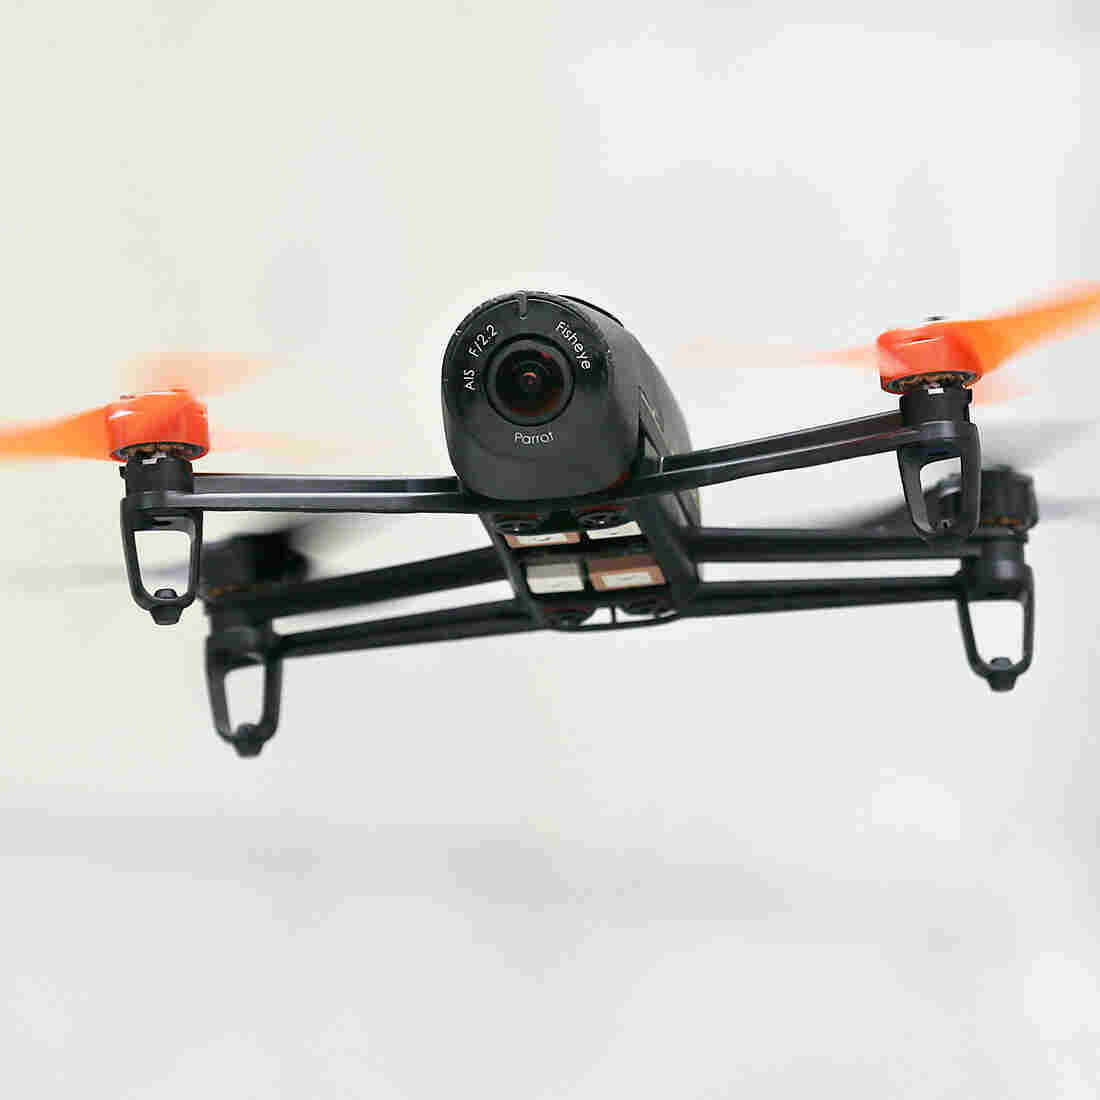 A 'Parrot Bebop' drone, used to take images, flies during a demo in San Francisco.